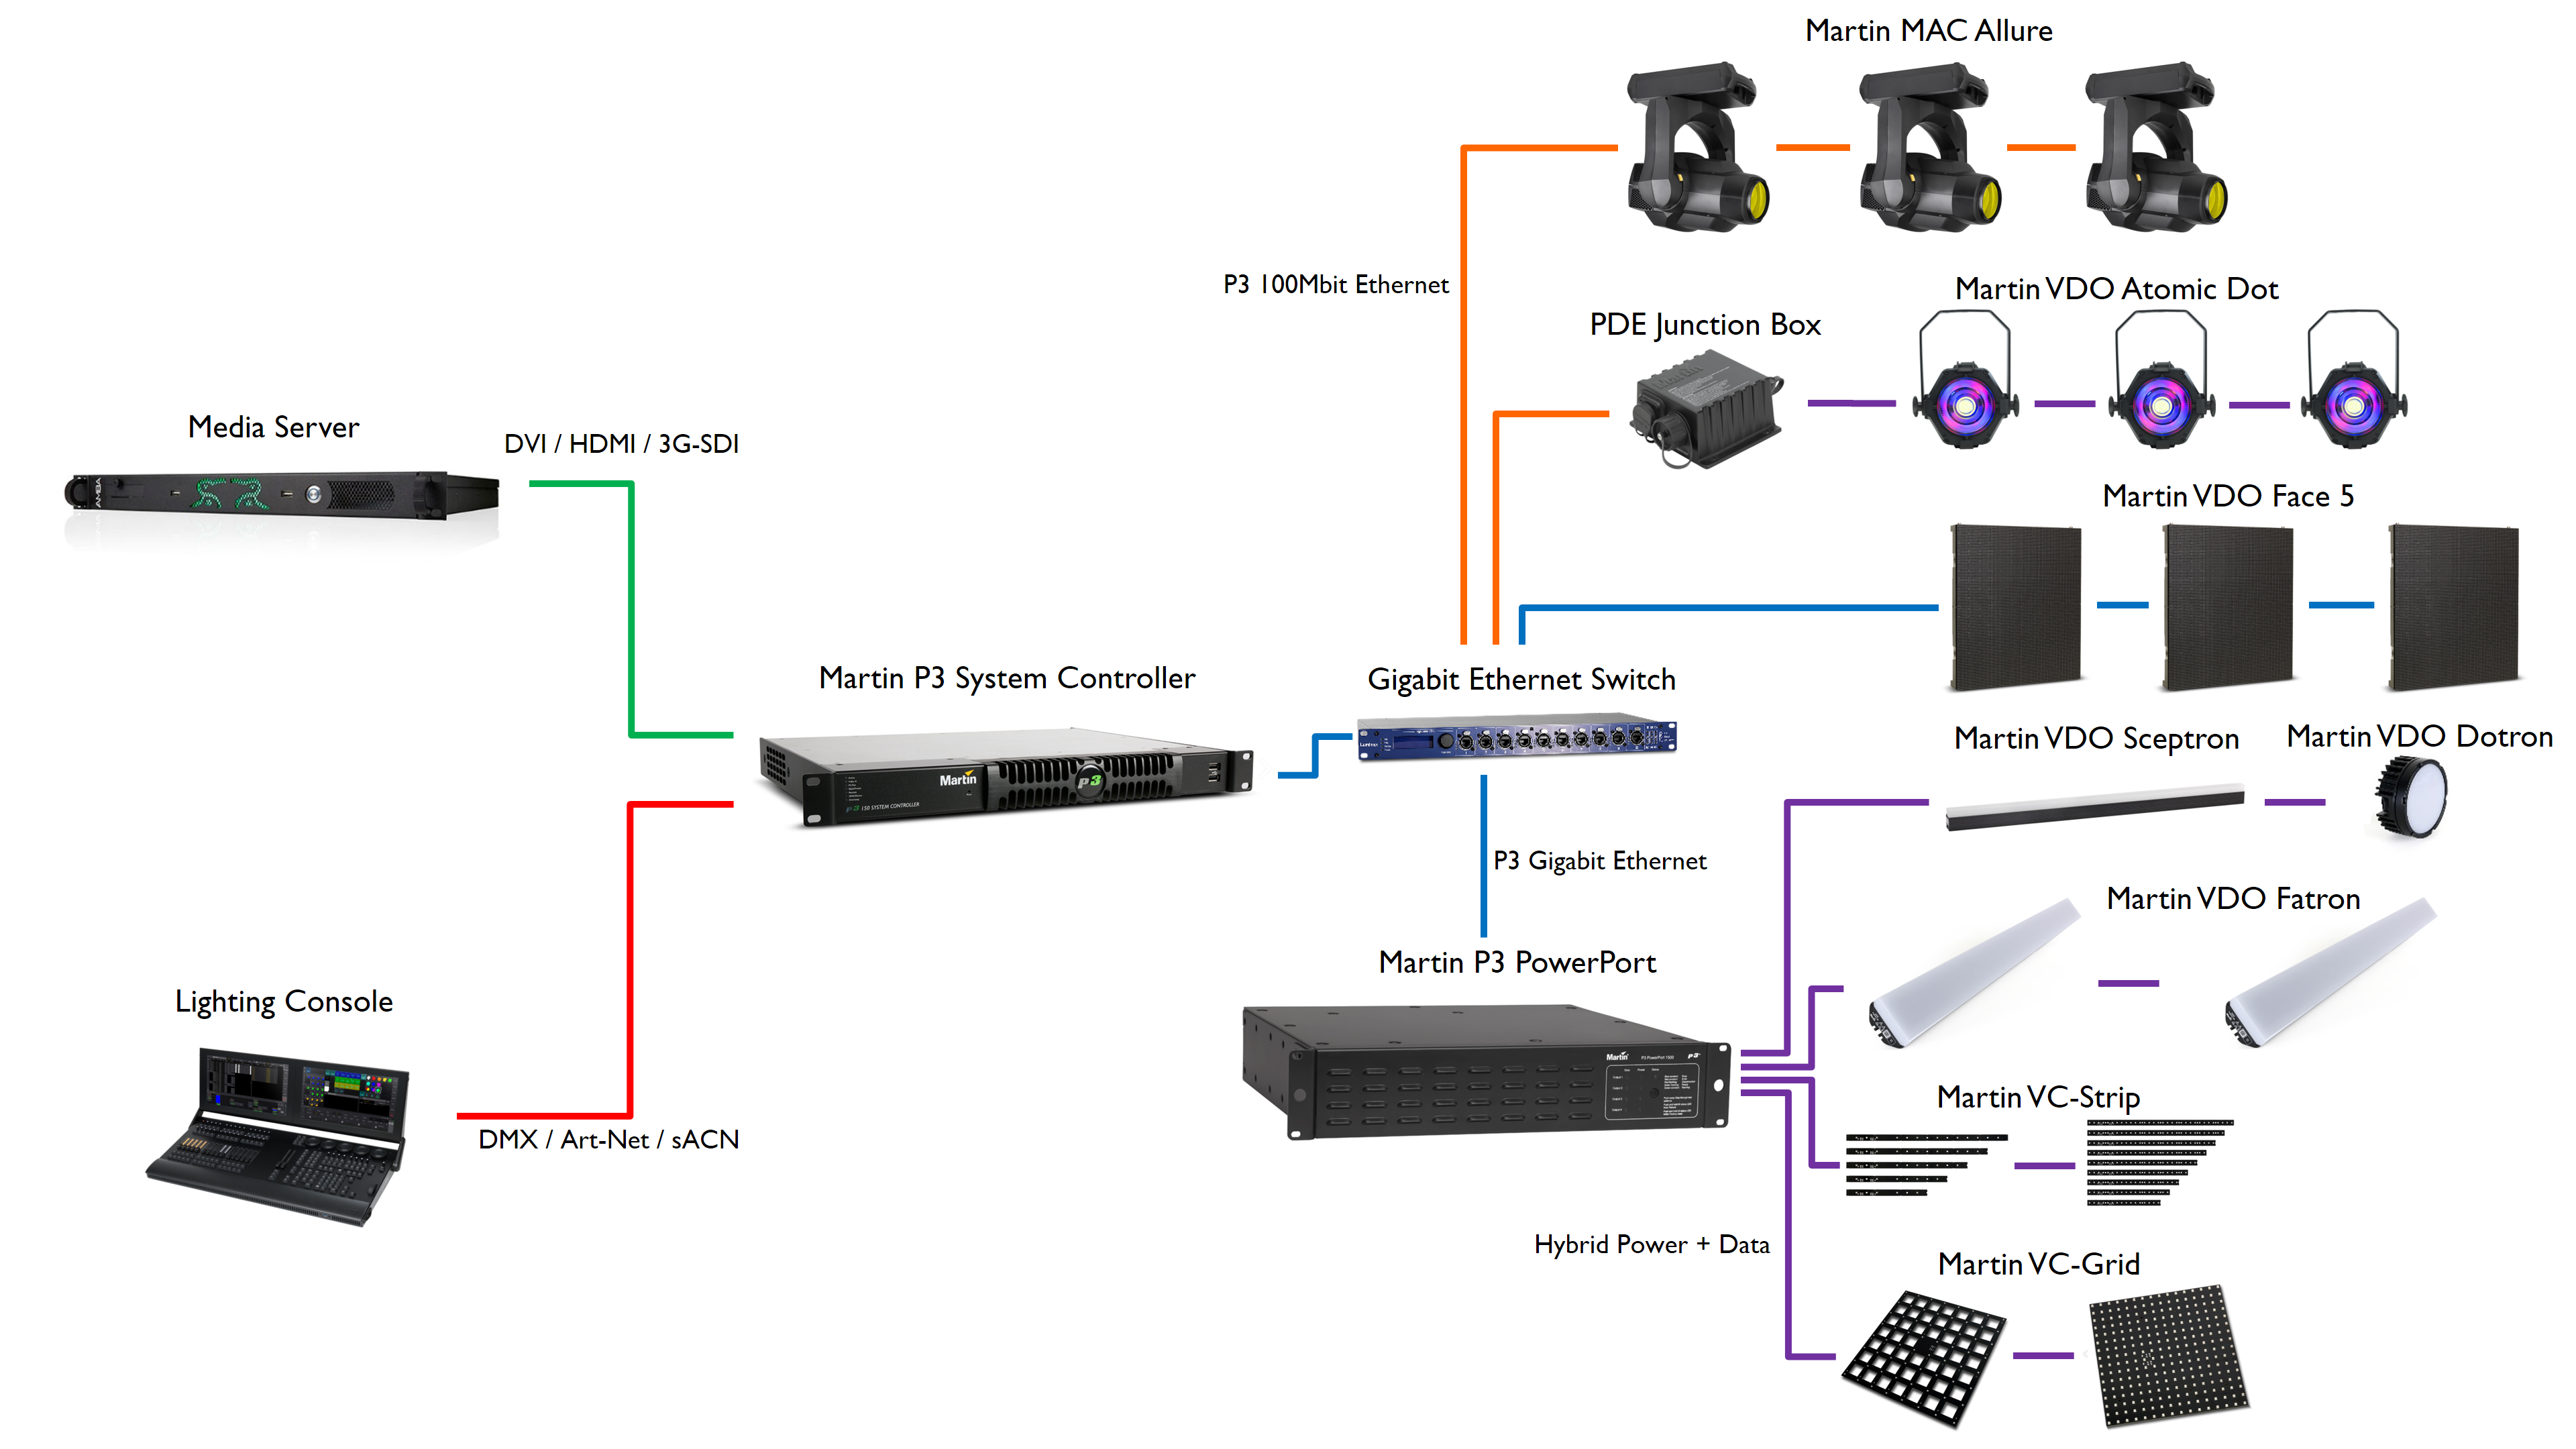 Mac Allure Martin Lighting The Dmx Power Over Cat5 System Is Not To Be Confused With Their Compact Design These Fixtures Are Extremely Easy Handle And Reduce Problem Of Truss Loading Constraints Fixture Typically Fits Into